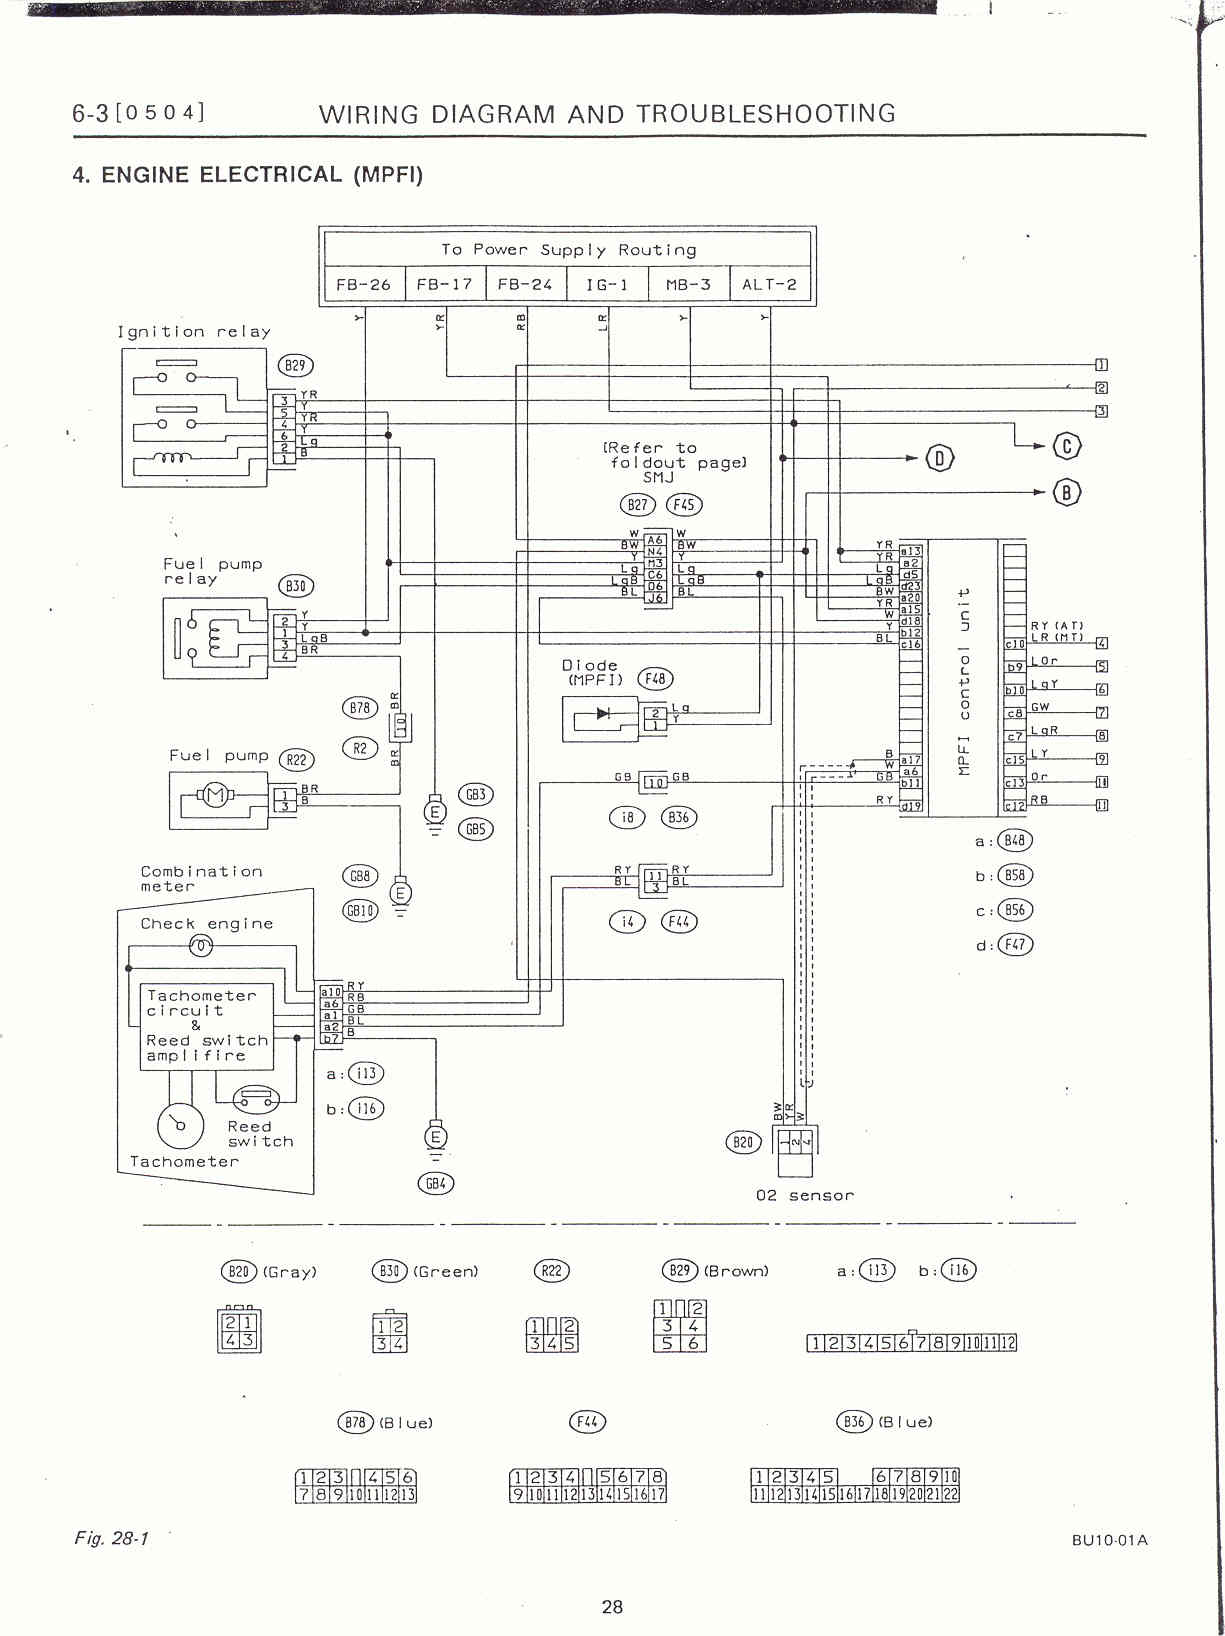 Sti Alternator Wiring Diagram Data 80 Gm 96 Subaru Intake Harness Detailed Chevy Ej22 Engine